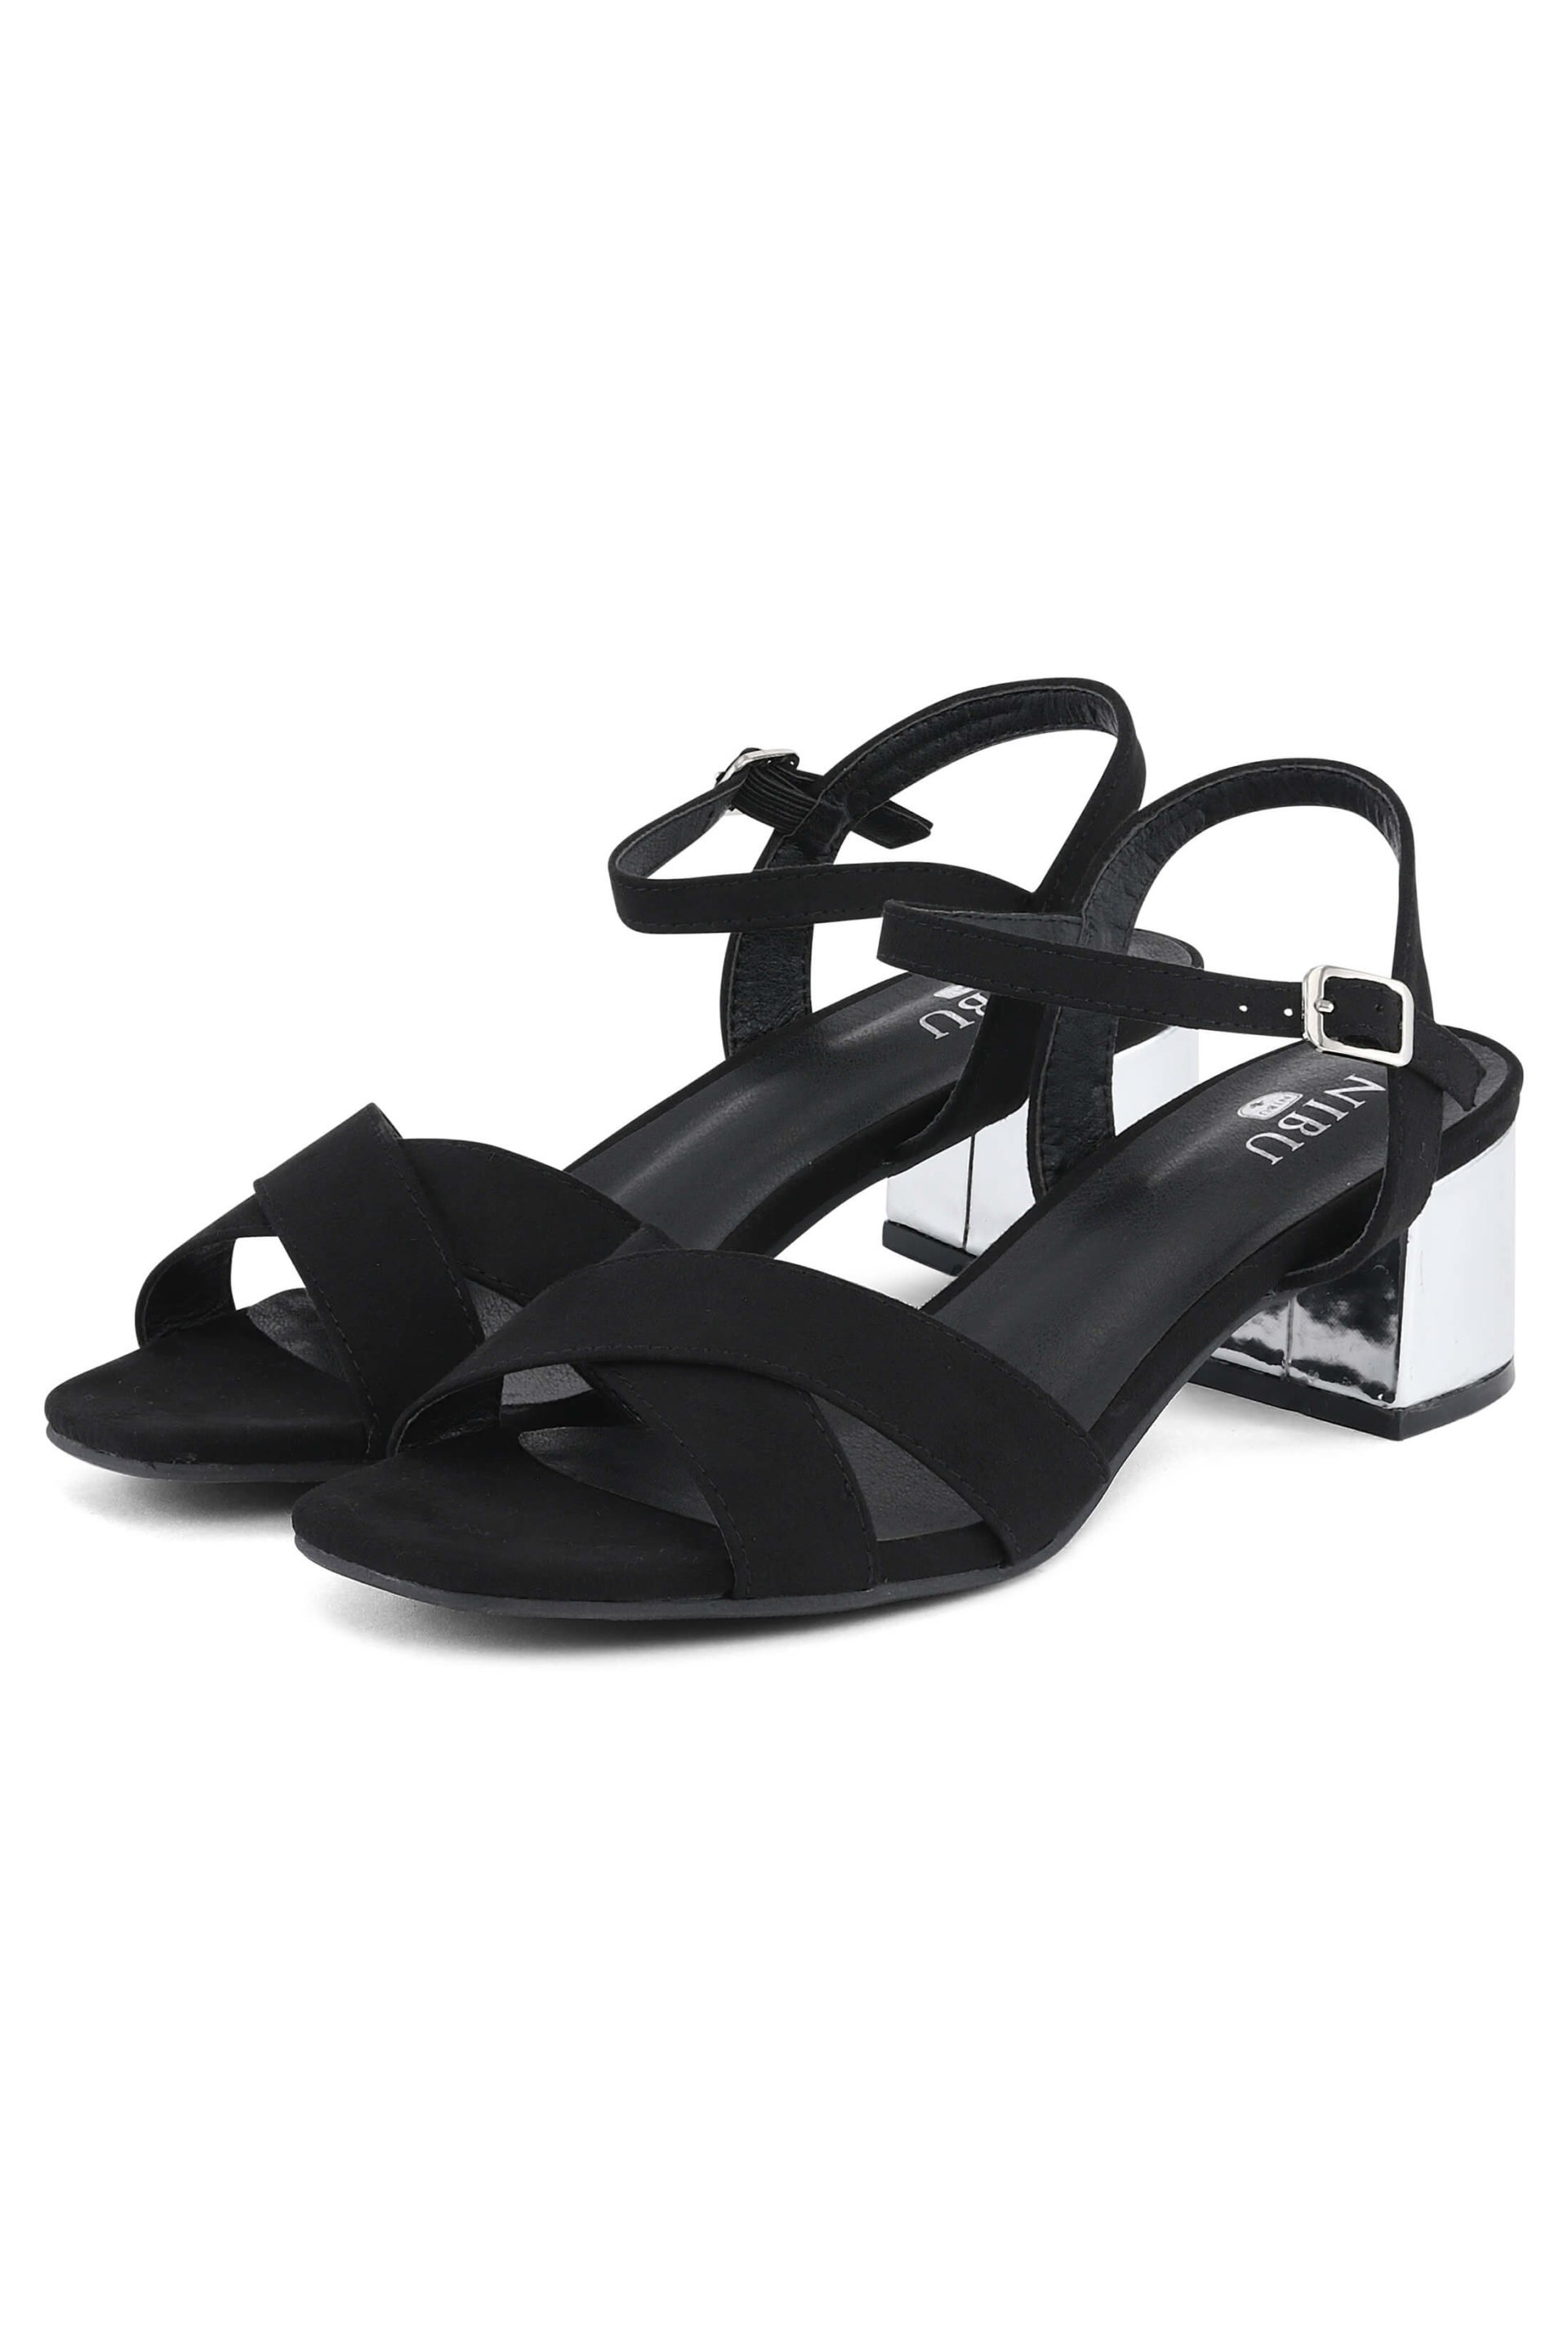 Black sandals with silver-coloured heels